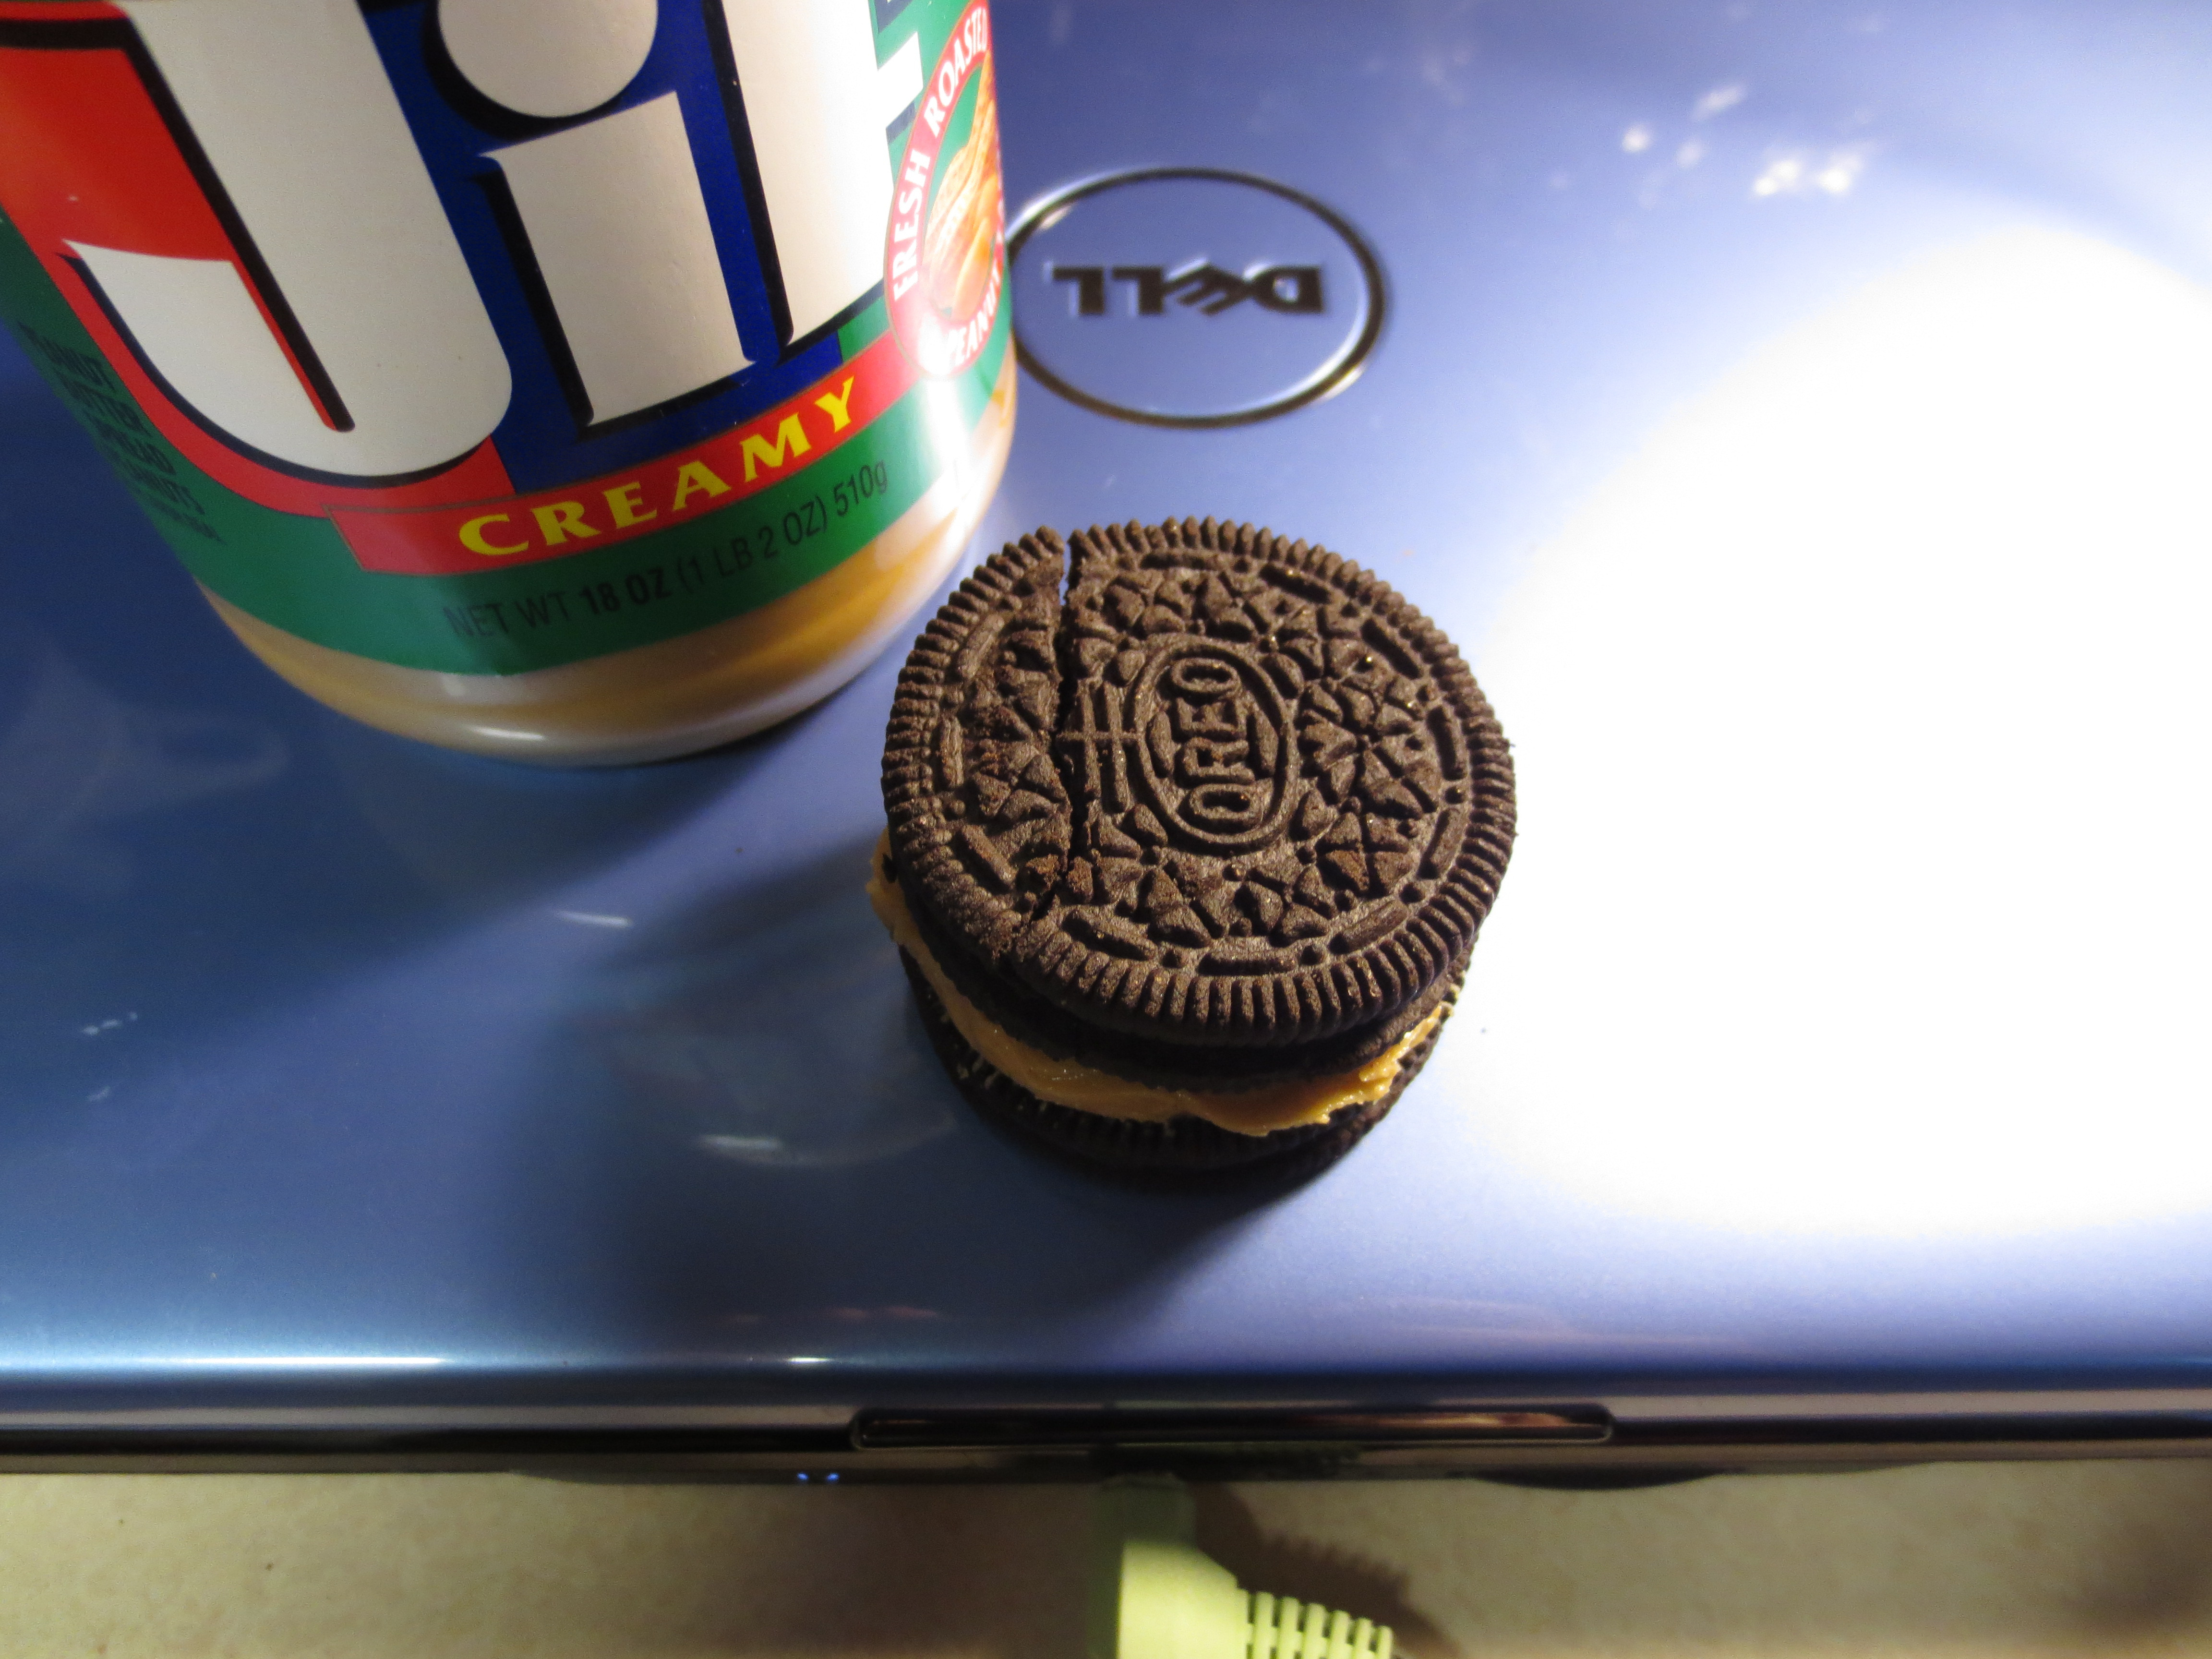 Yolo You Obviously Love Oreos Yolo you obviously love